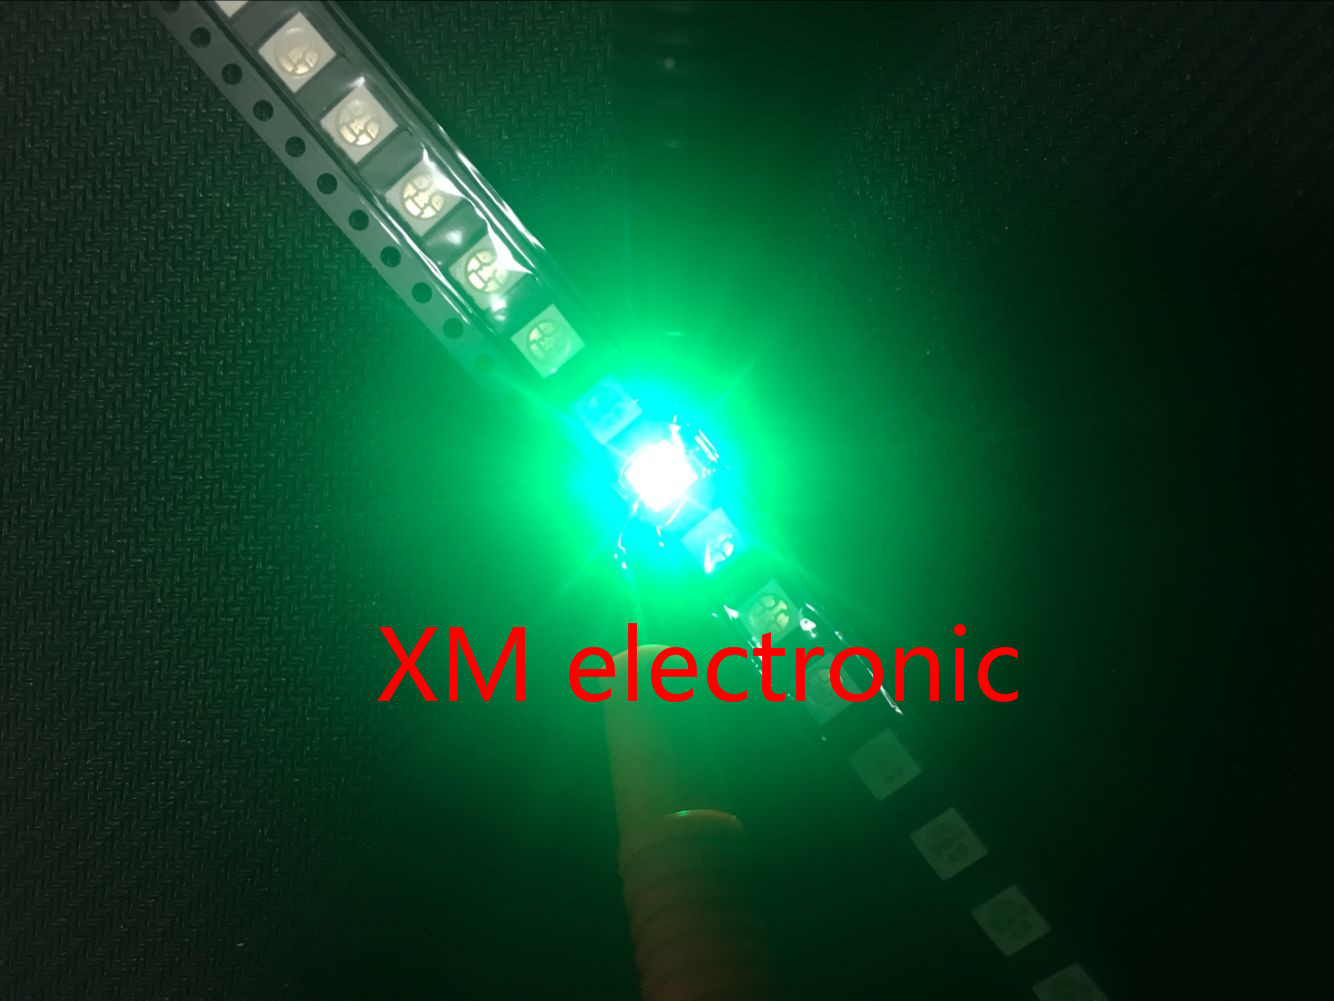 200pcs 5050 Smd Green Plcc-6 3-chips 9000 Mcd Ultra Bright Led High Quality Light-emitting Diodes 5050 Green Led 5050 Diodes Products Hot Sale Diodes